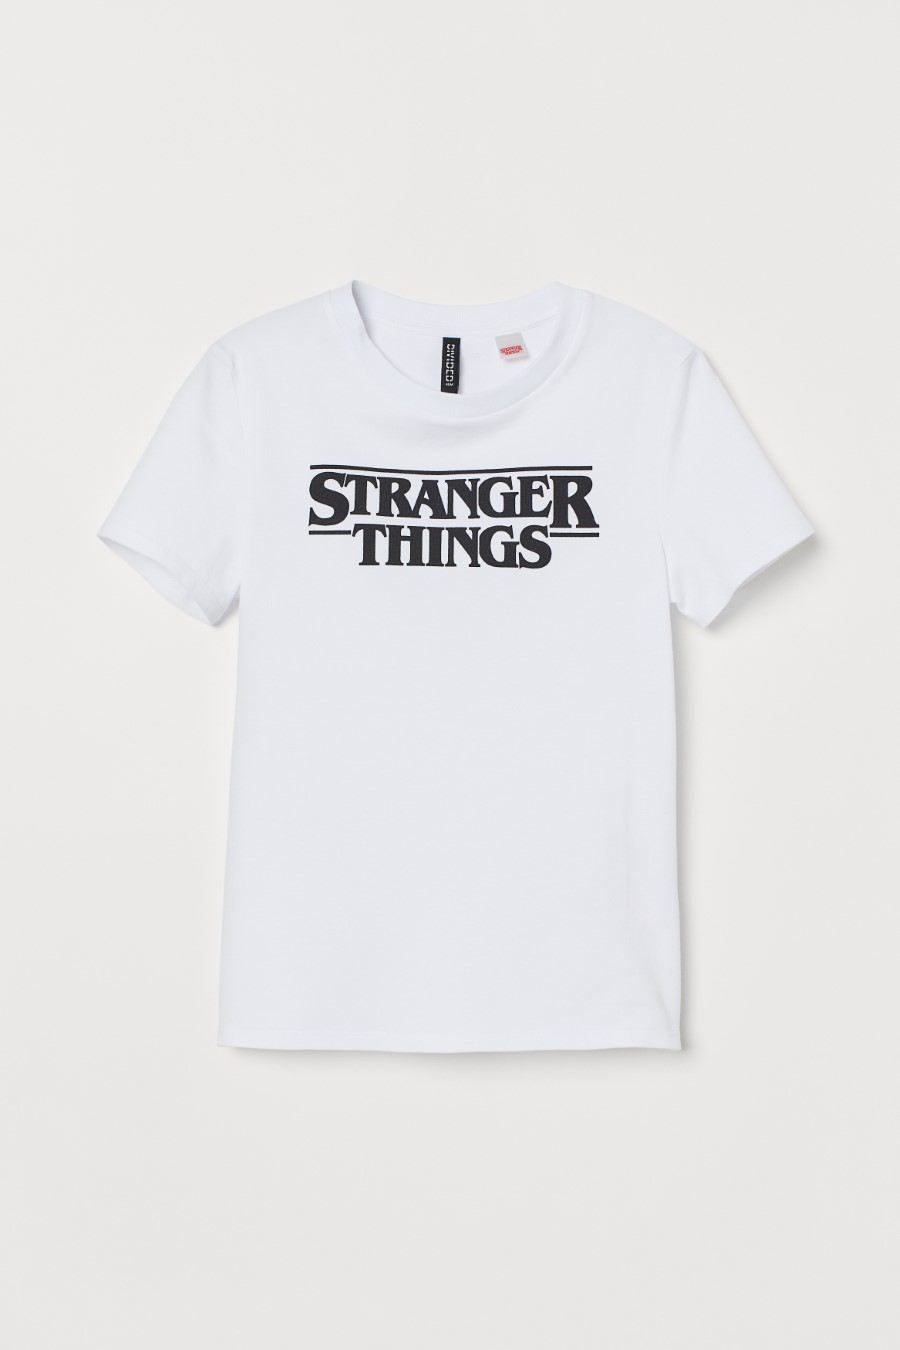 H&M x Netflix - Stranger Things